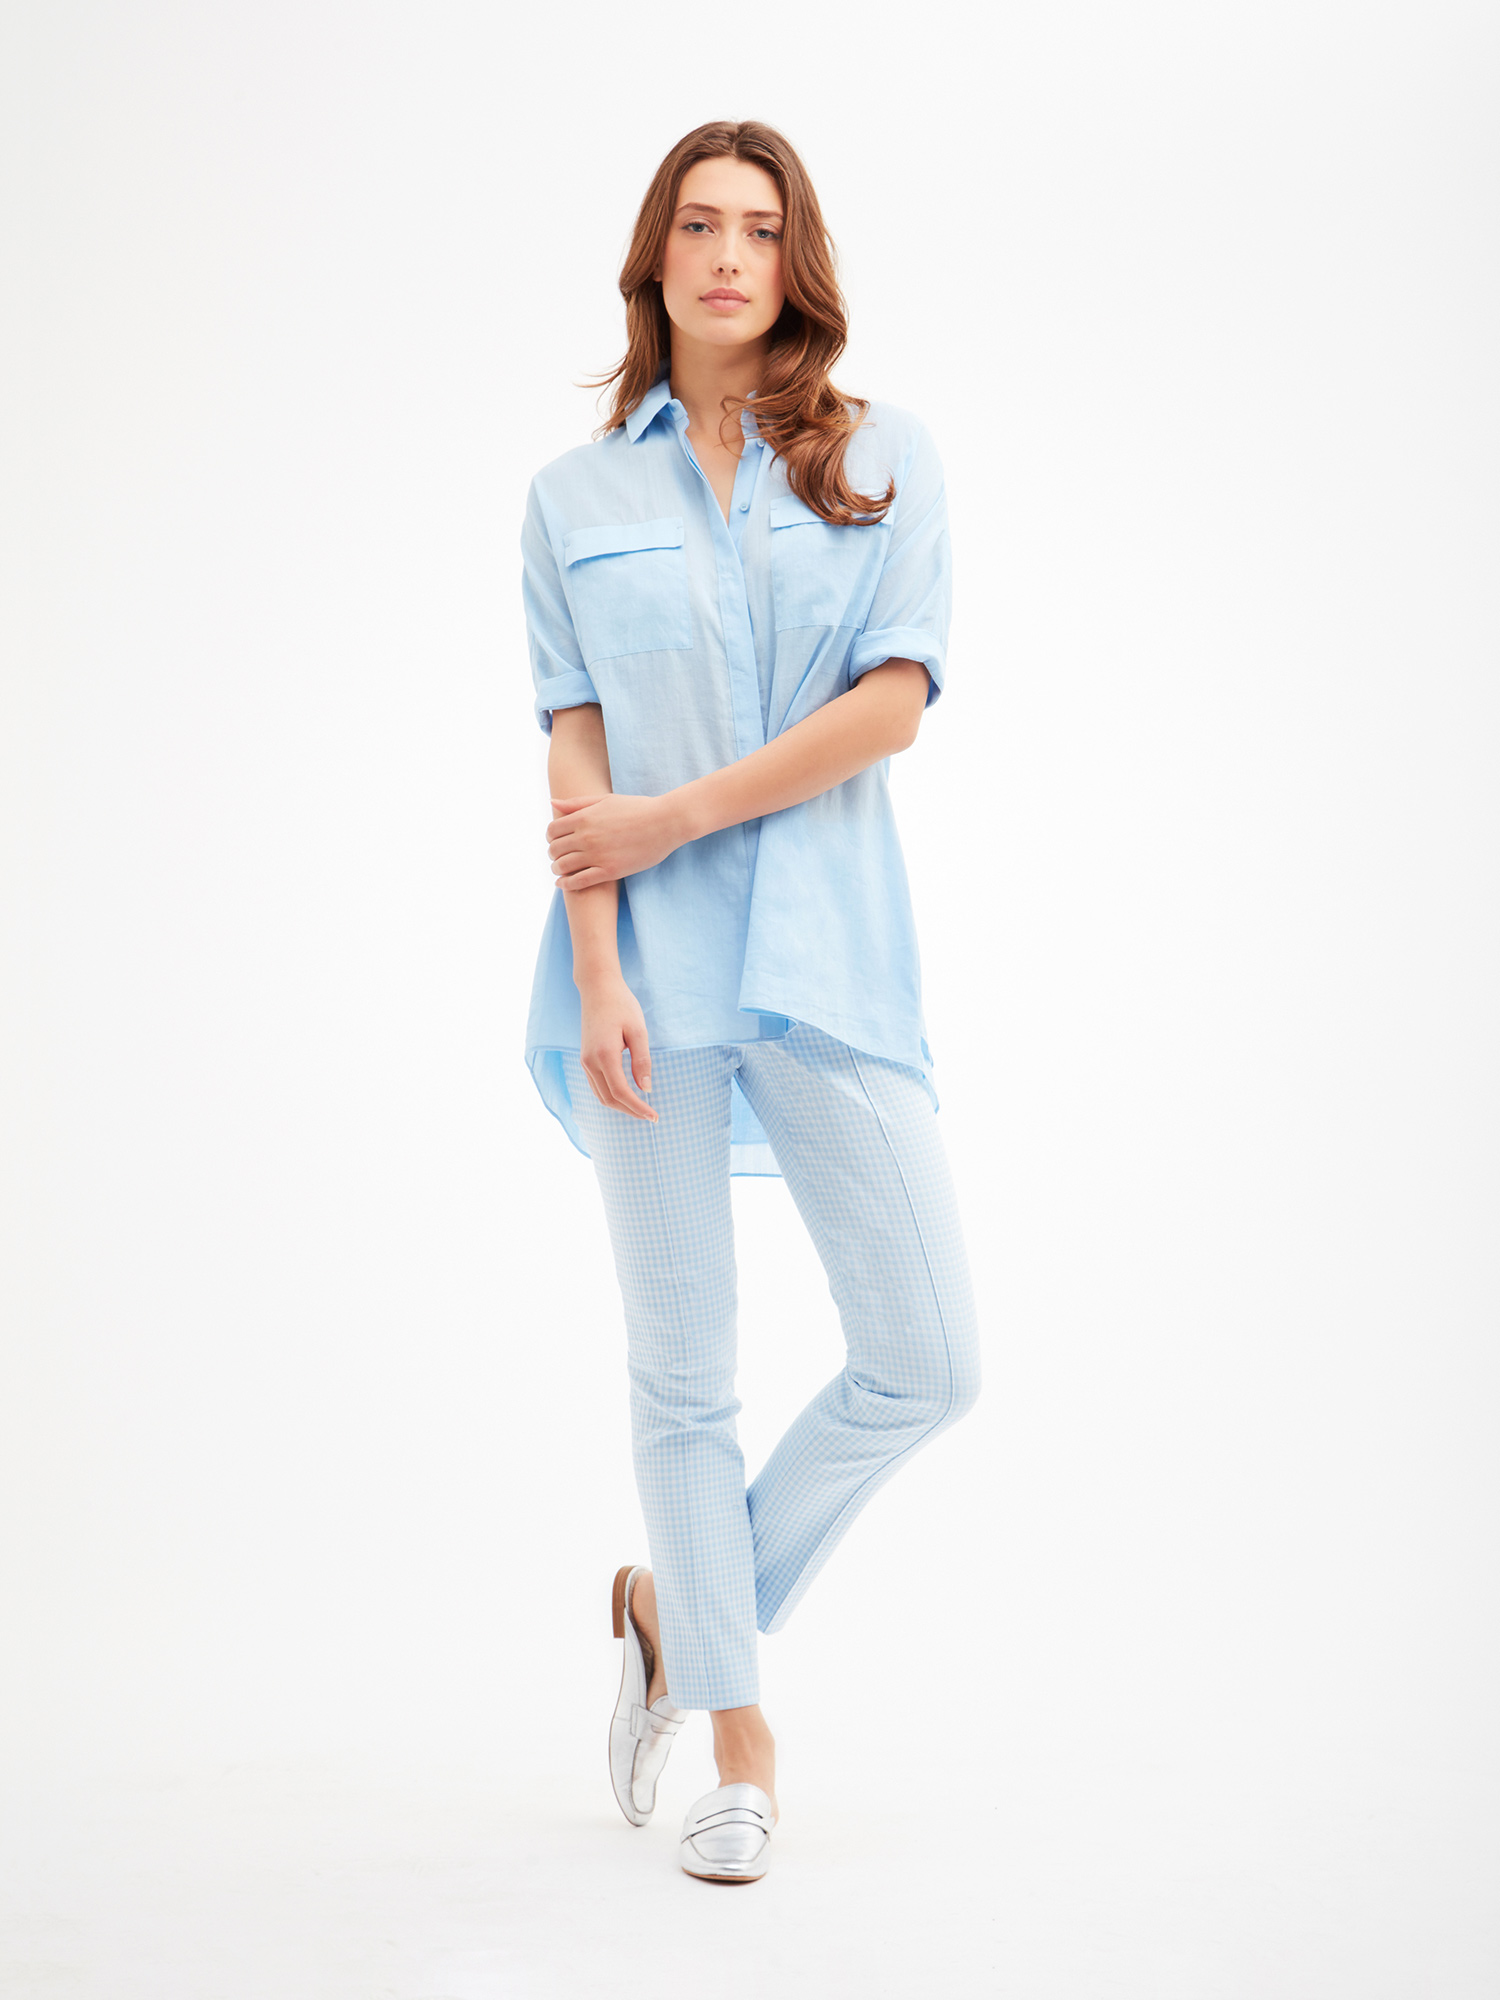 Oversize A-line tunic from the Carlisle Collection.